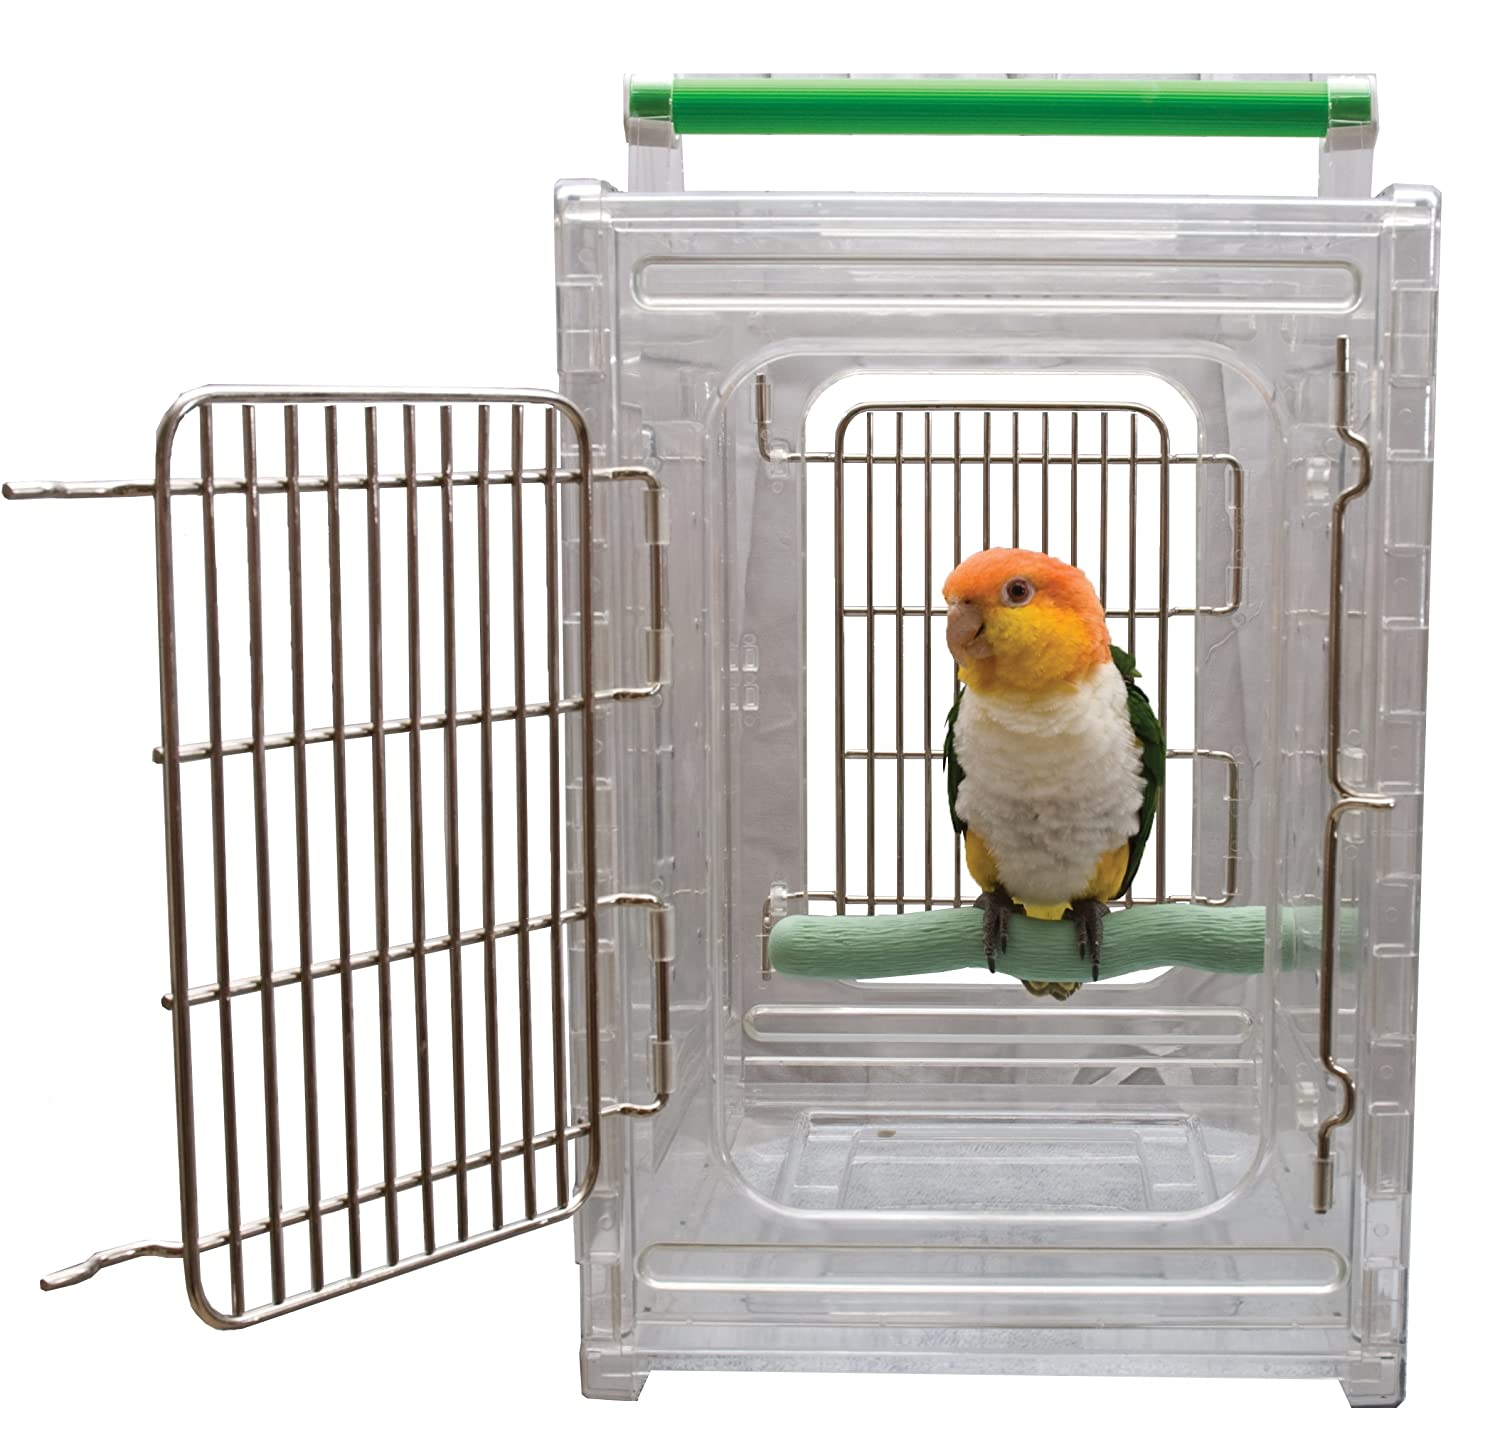 Caitec Perch N Go Polycarbonate Bird Carrier Caitec Corp 50002